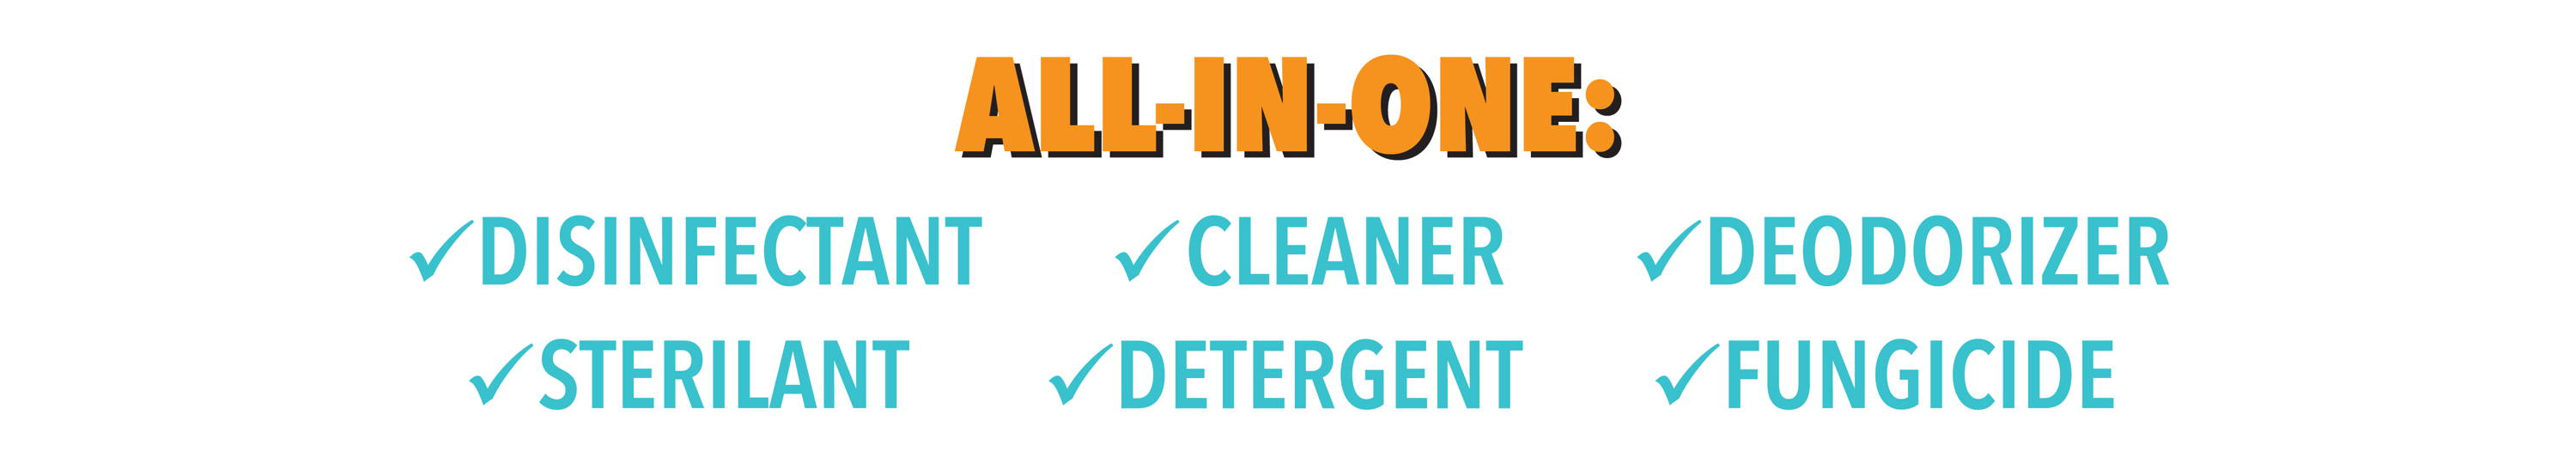 SteriCide all in one: disinfectant, sterilant, cleaner, detergent, deodorizer, fungicide